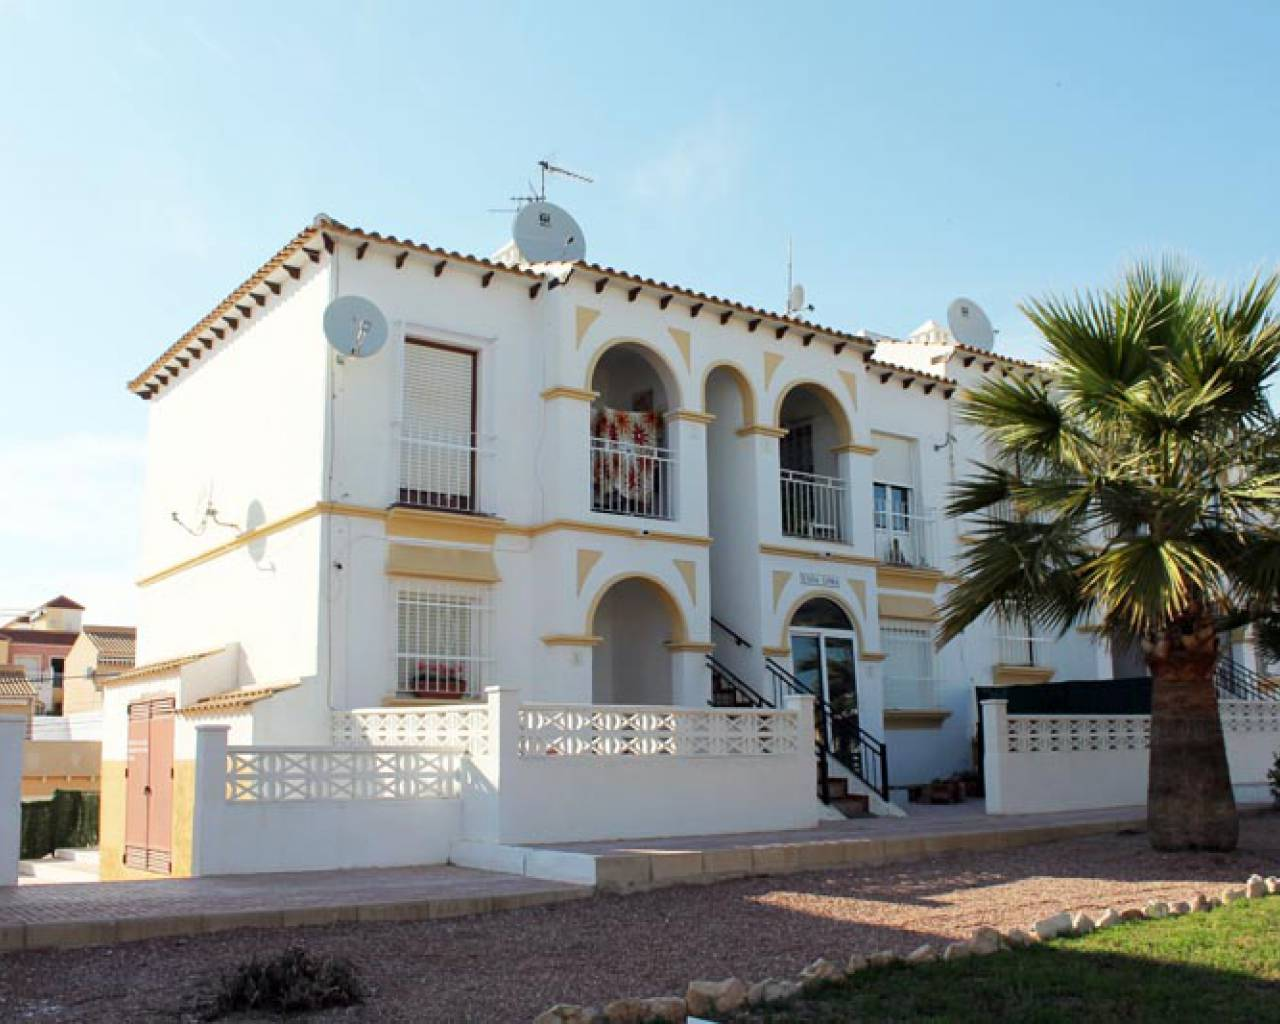 Apartment - Long term rental - San Miguel de Salinas - El Galán